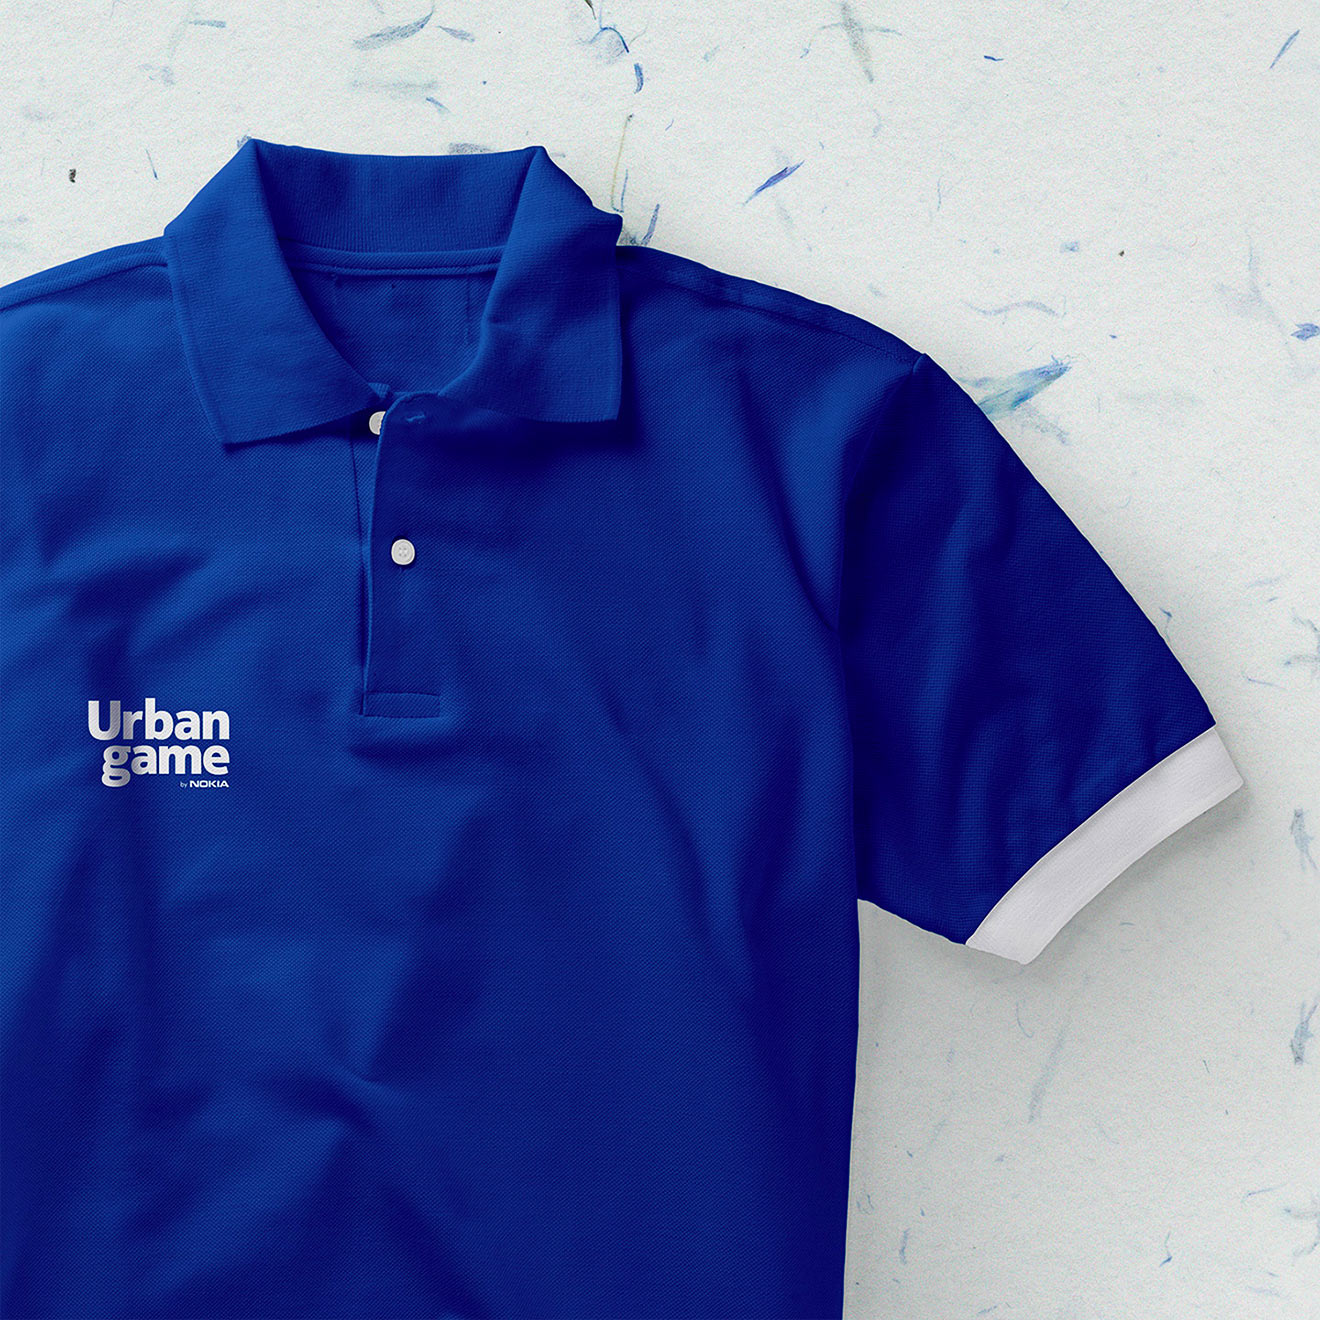 Urban Game by Nokia - Zoom in on Polo Shirt